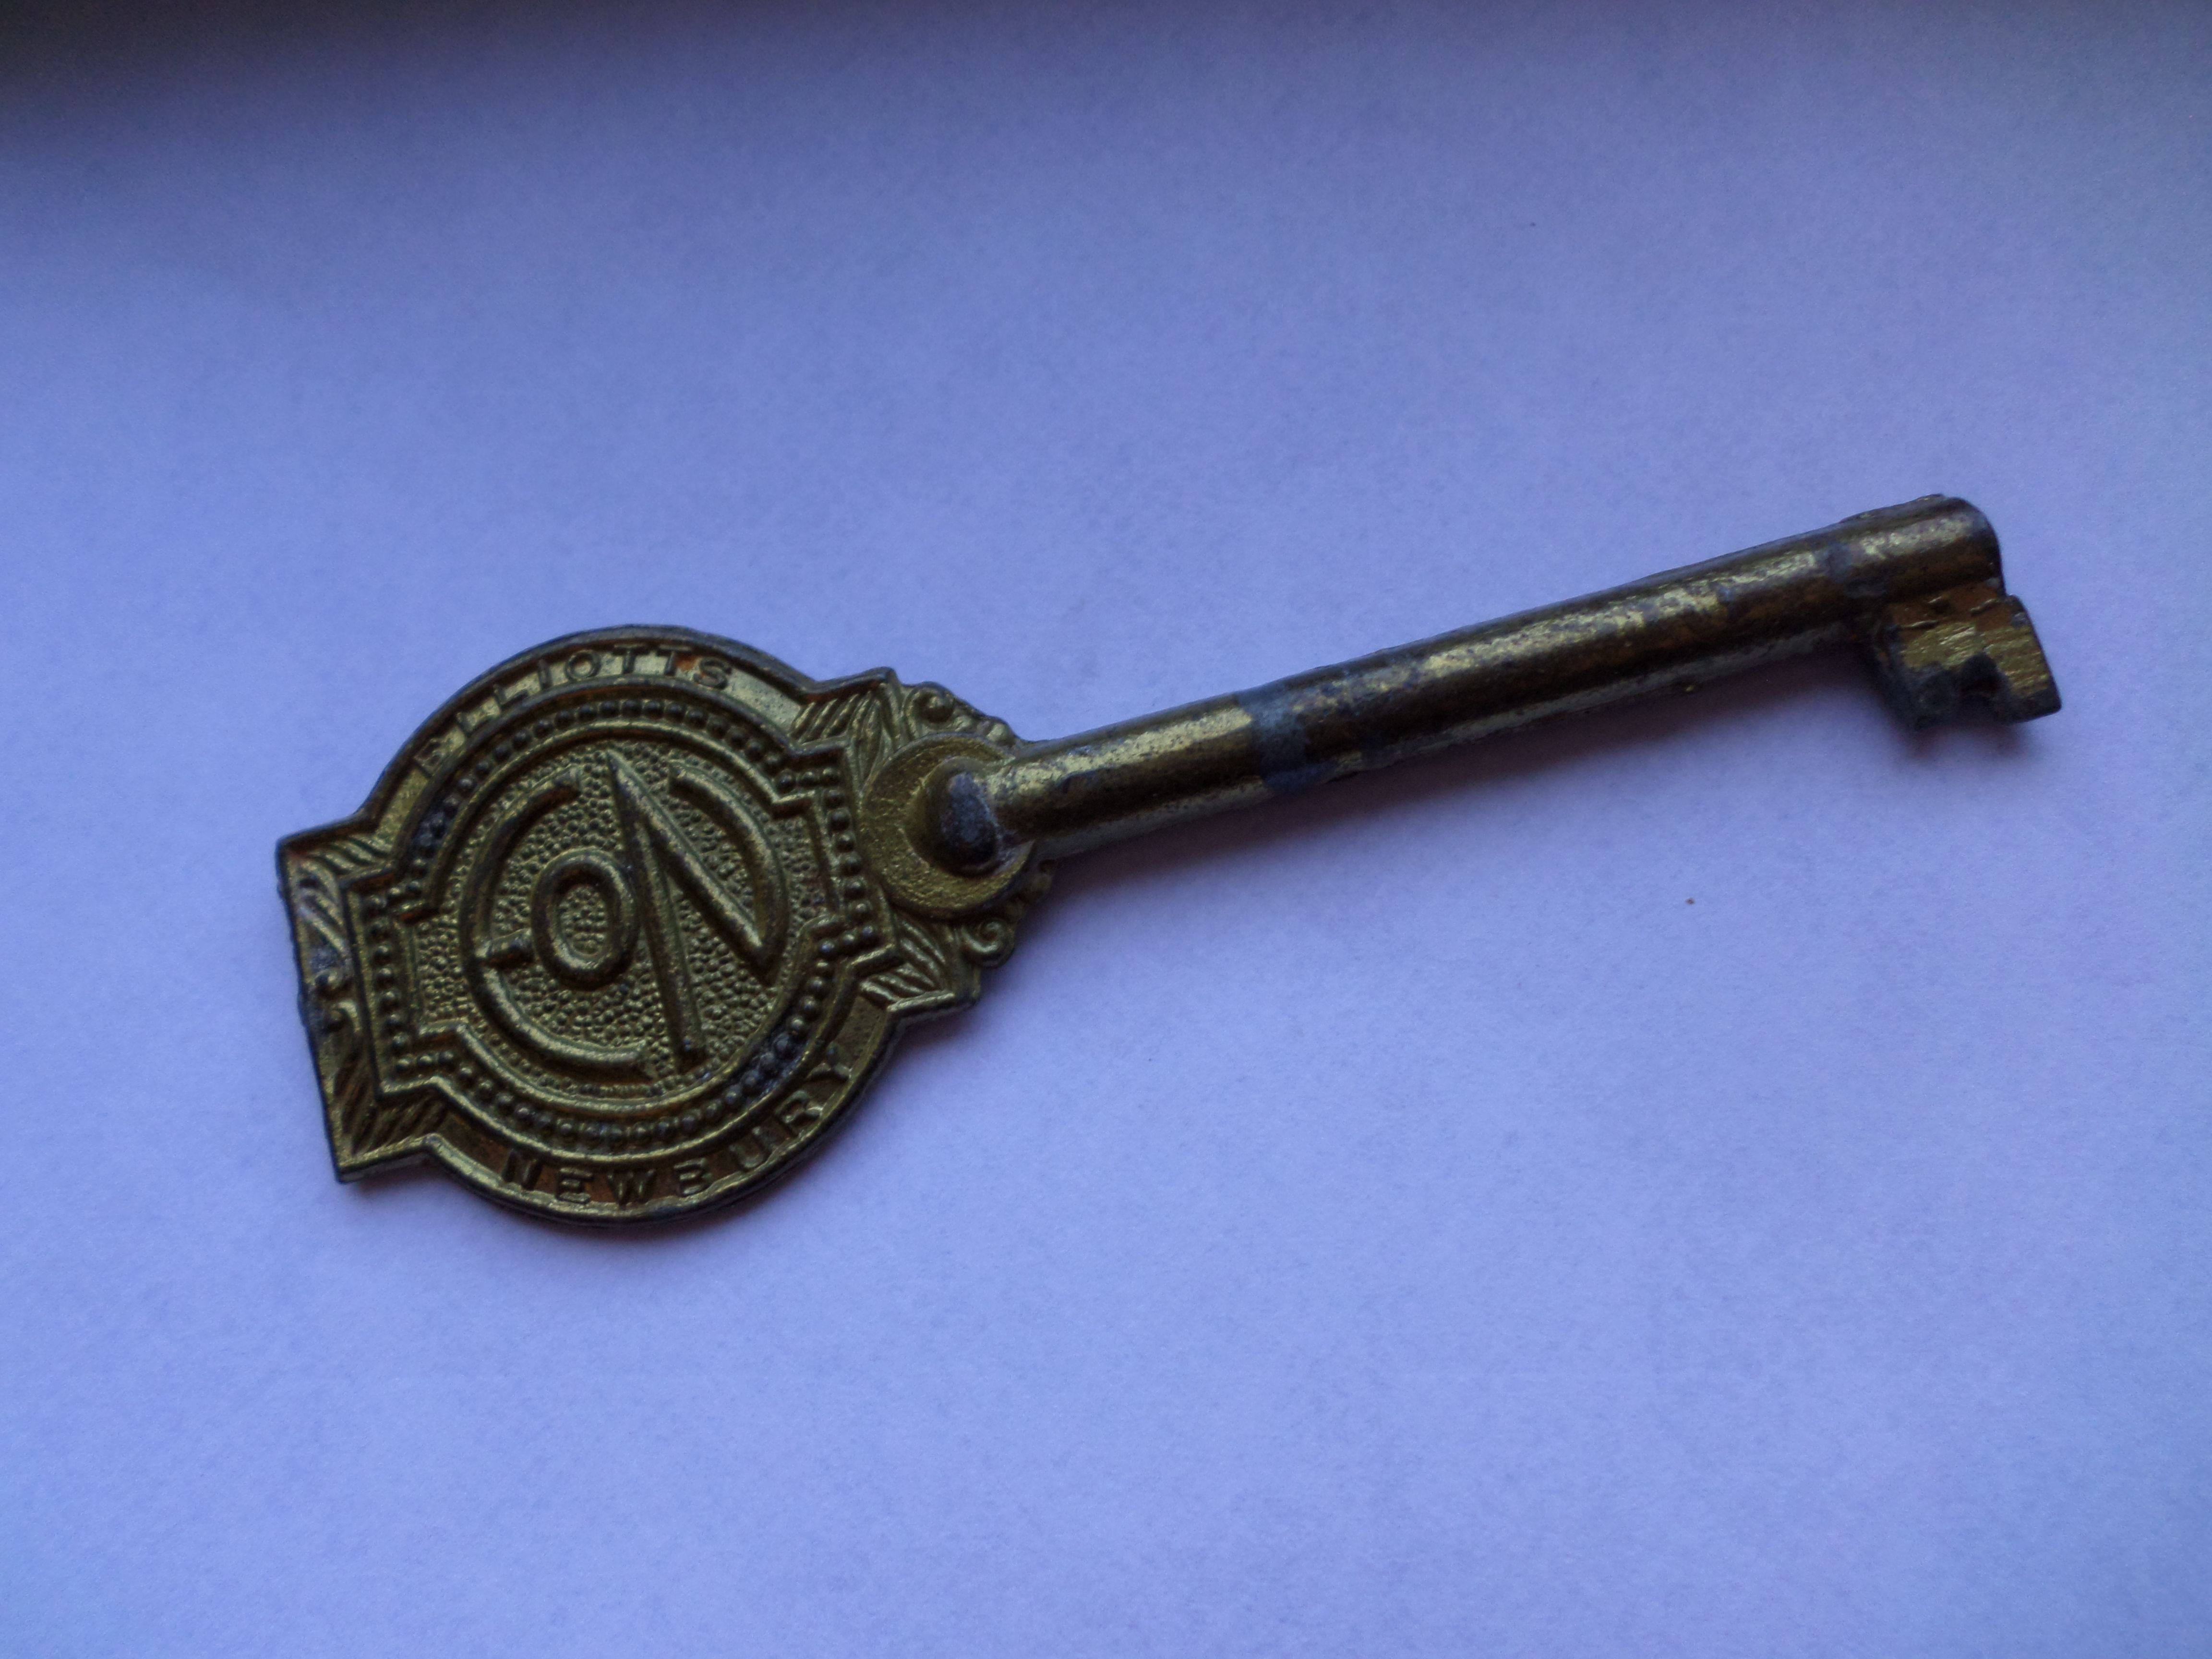 I don't know what Eon stands for but the key is nice - another from my collection